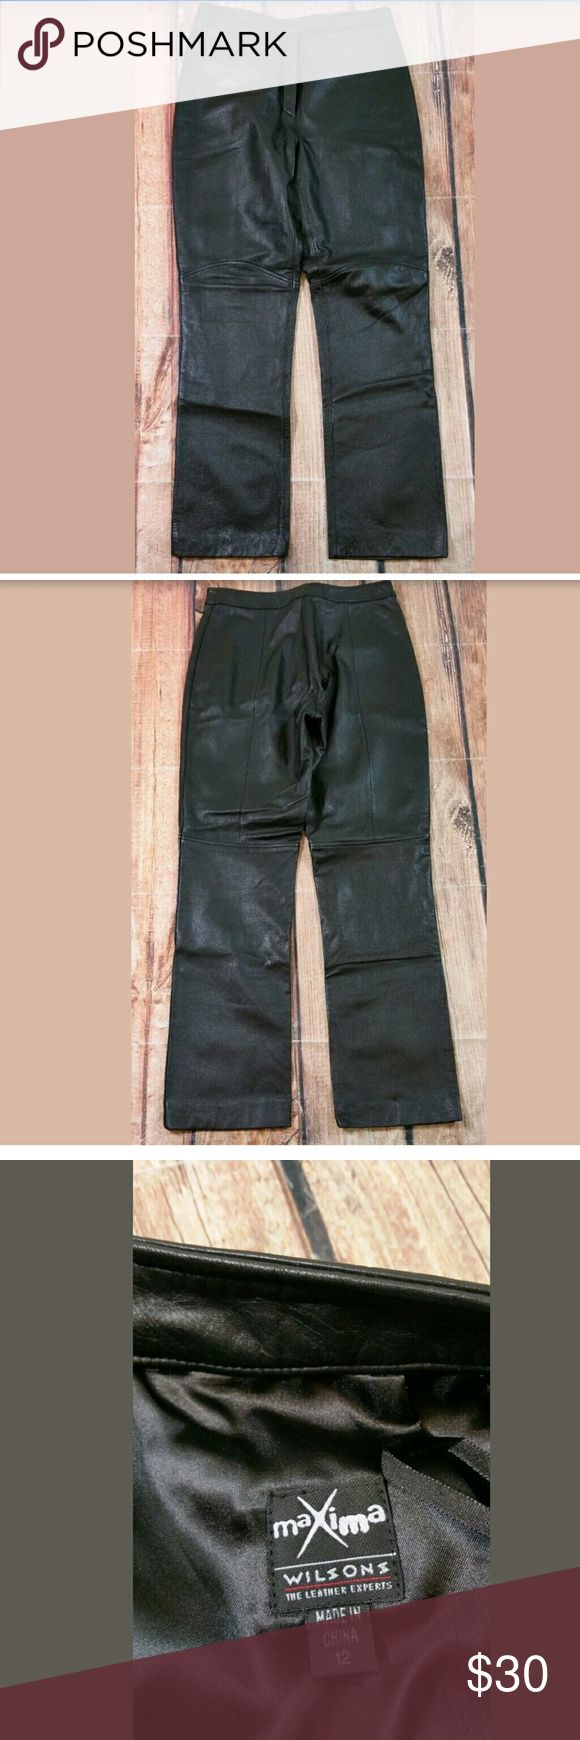 """Wilsons Leather Maxima Leather Motorcycle Pants Wilsons Leather Maxima Black Leather Motorcycle Biker Pants Womens Size 12 1 Front Zippered Pocket  Measurements: Waist = 30"""" Outseam Length = 40"""" Inseam = 30""""  Condition:  Great Pre-Owned Condition from clean pet/smoke free home. Wilsons Leather Pants Straight Leg"""